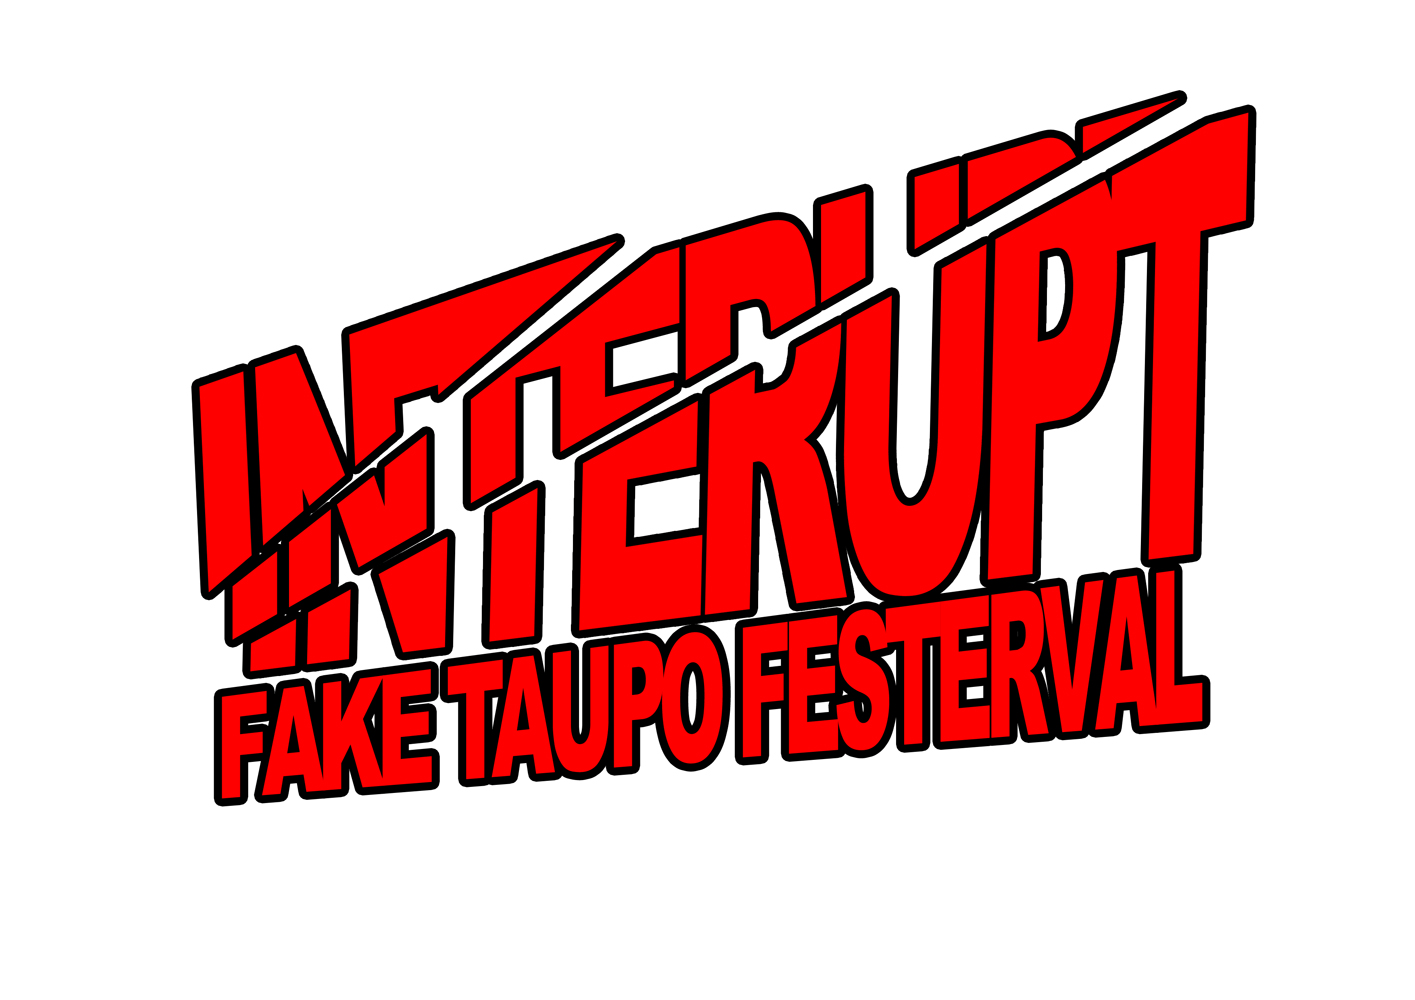 IntErupt >> The Fake Taupō Farts Festerval 2012